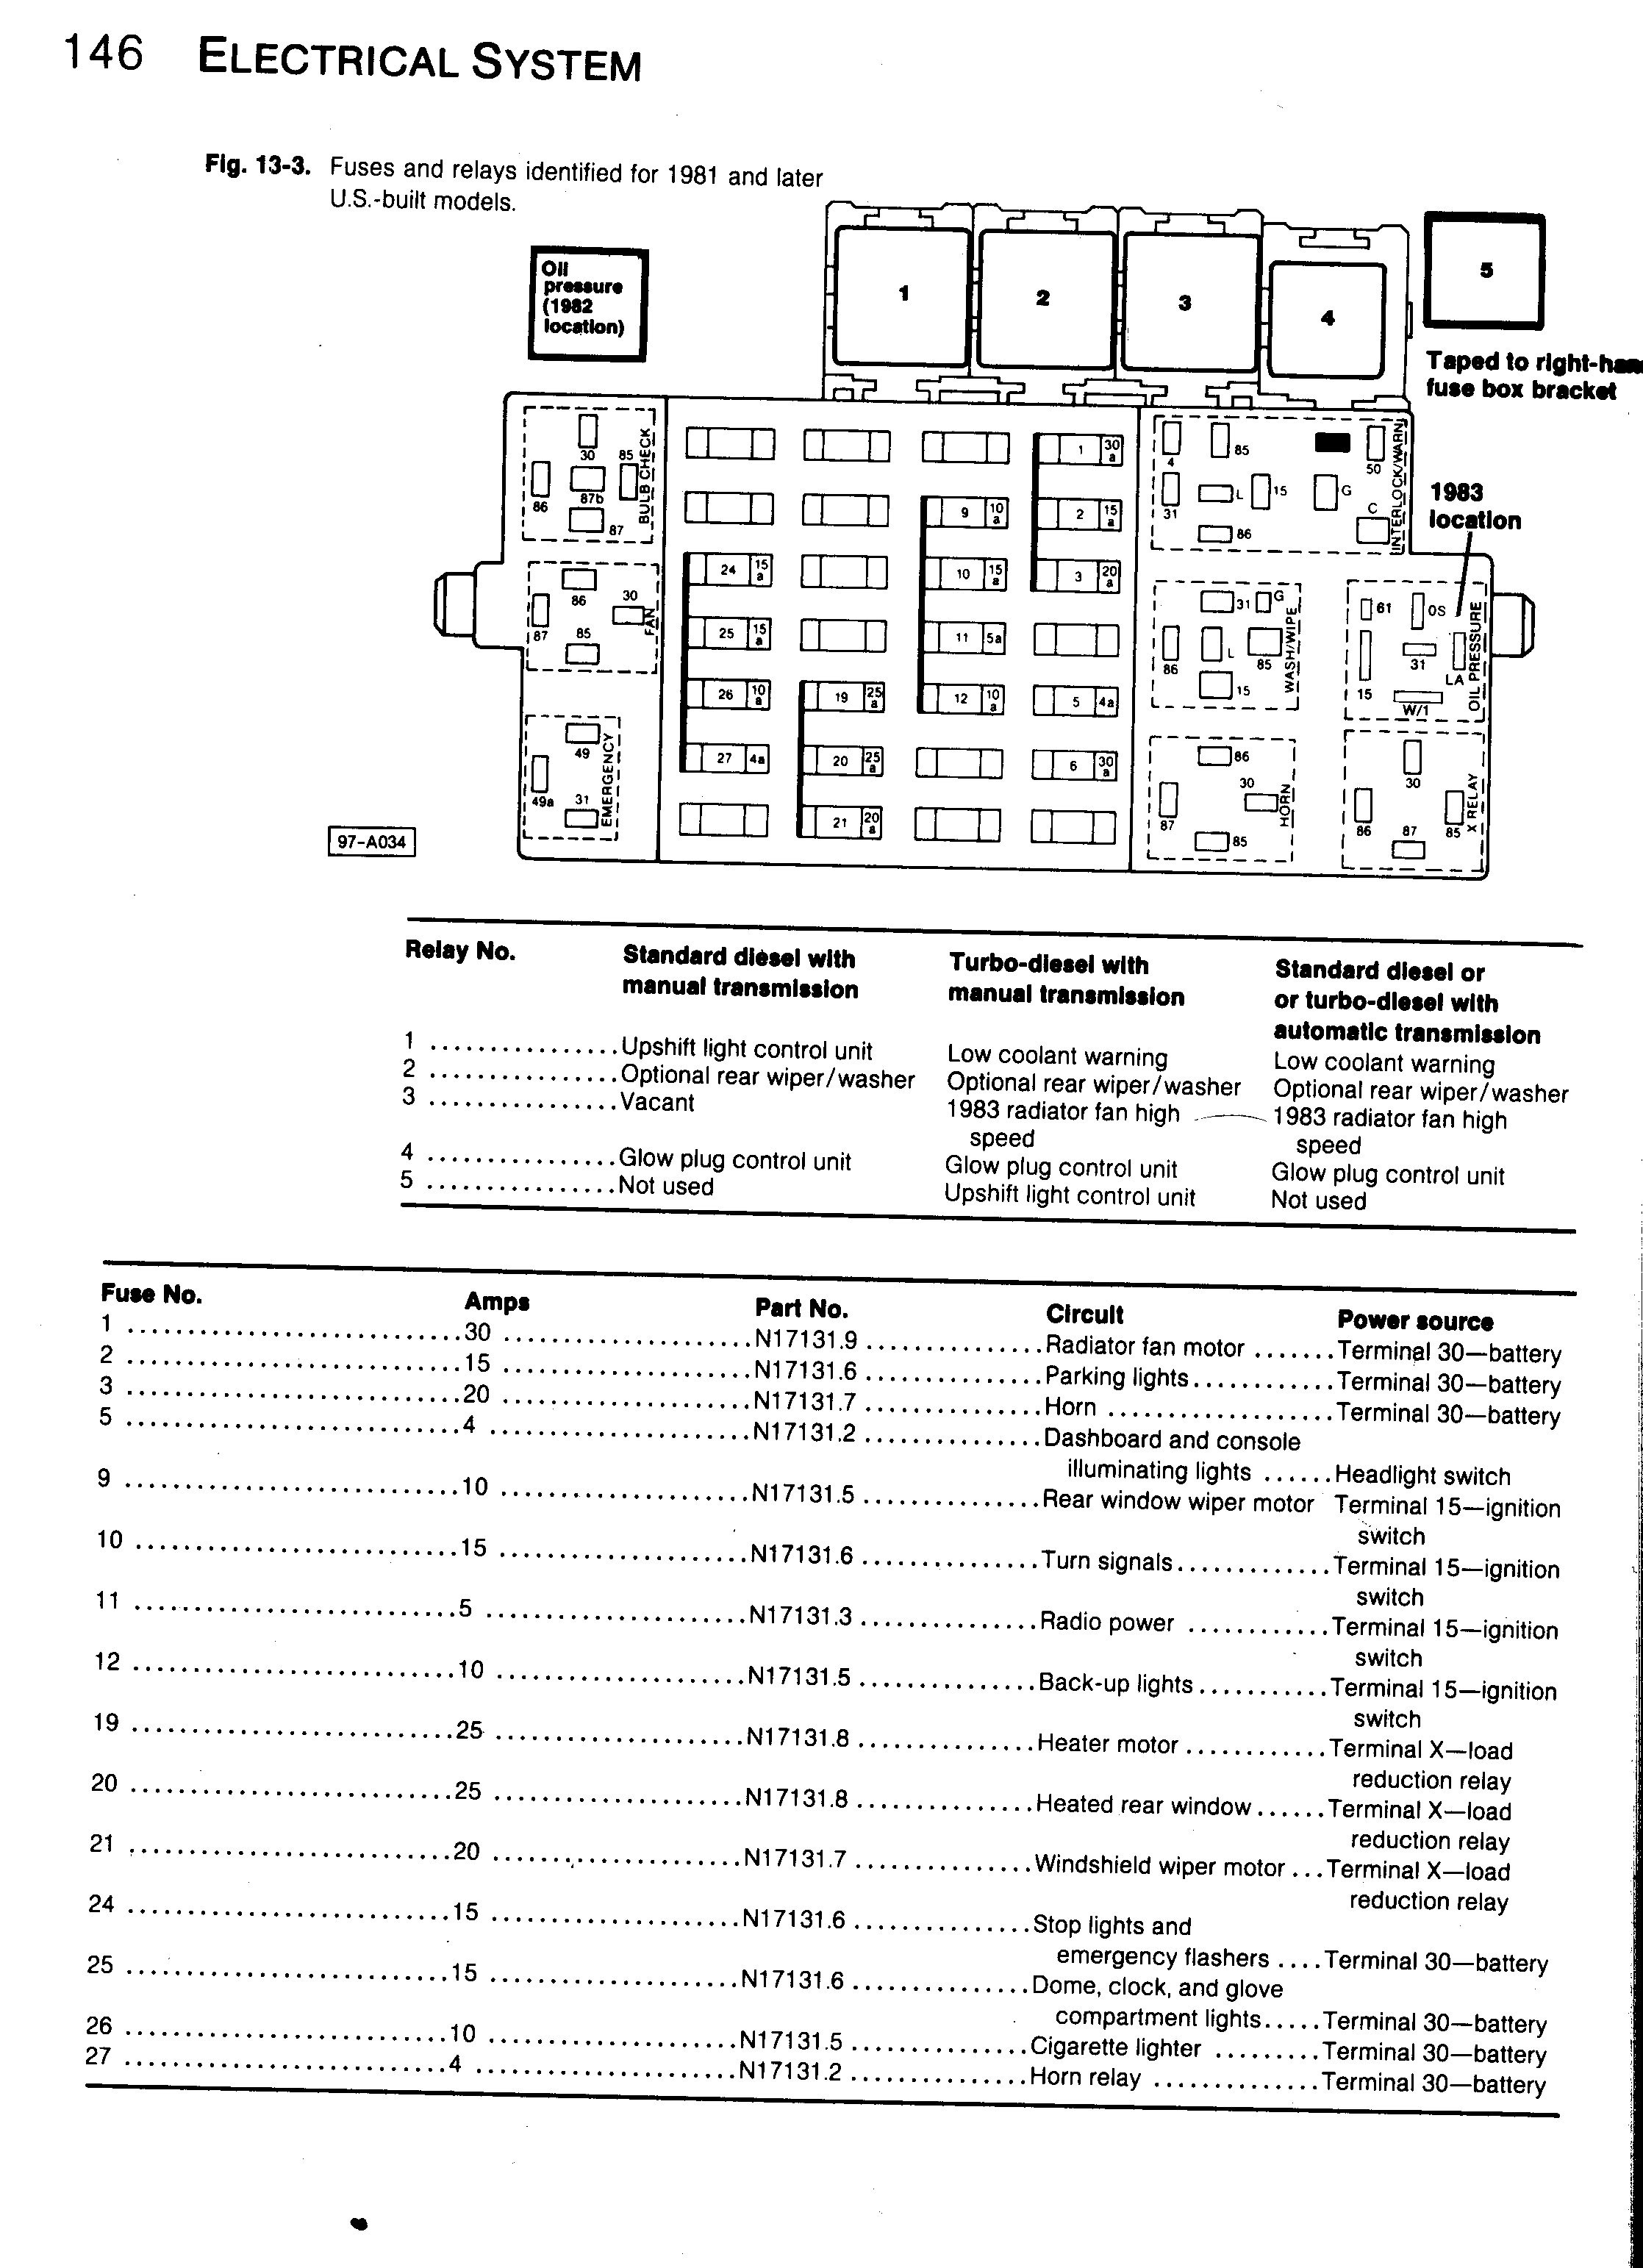 Smart Car Fuse Box Diagram 2008 Vw Fuse Box Wiring Diagram